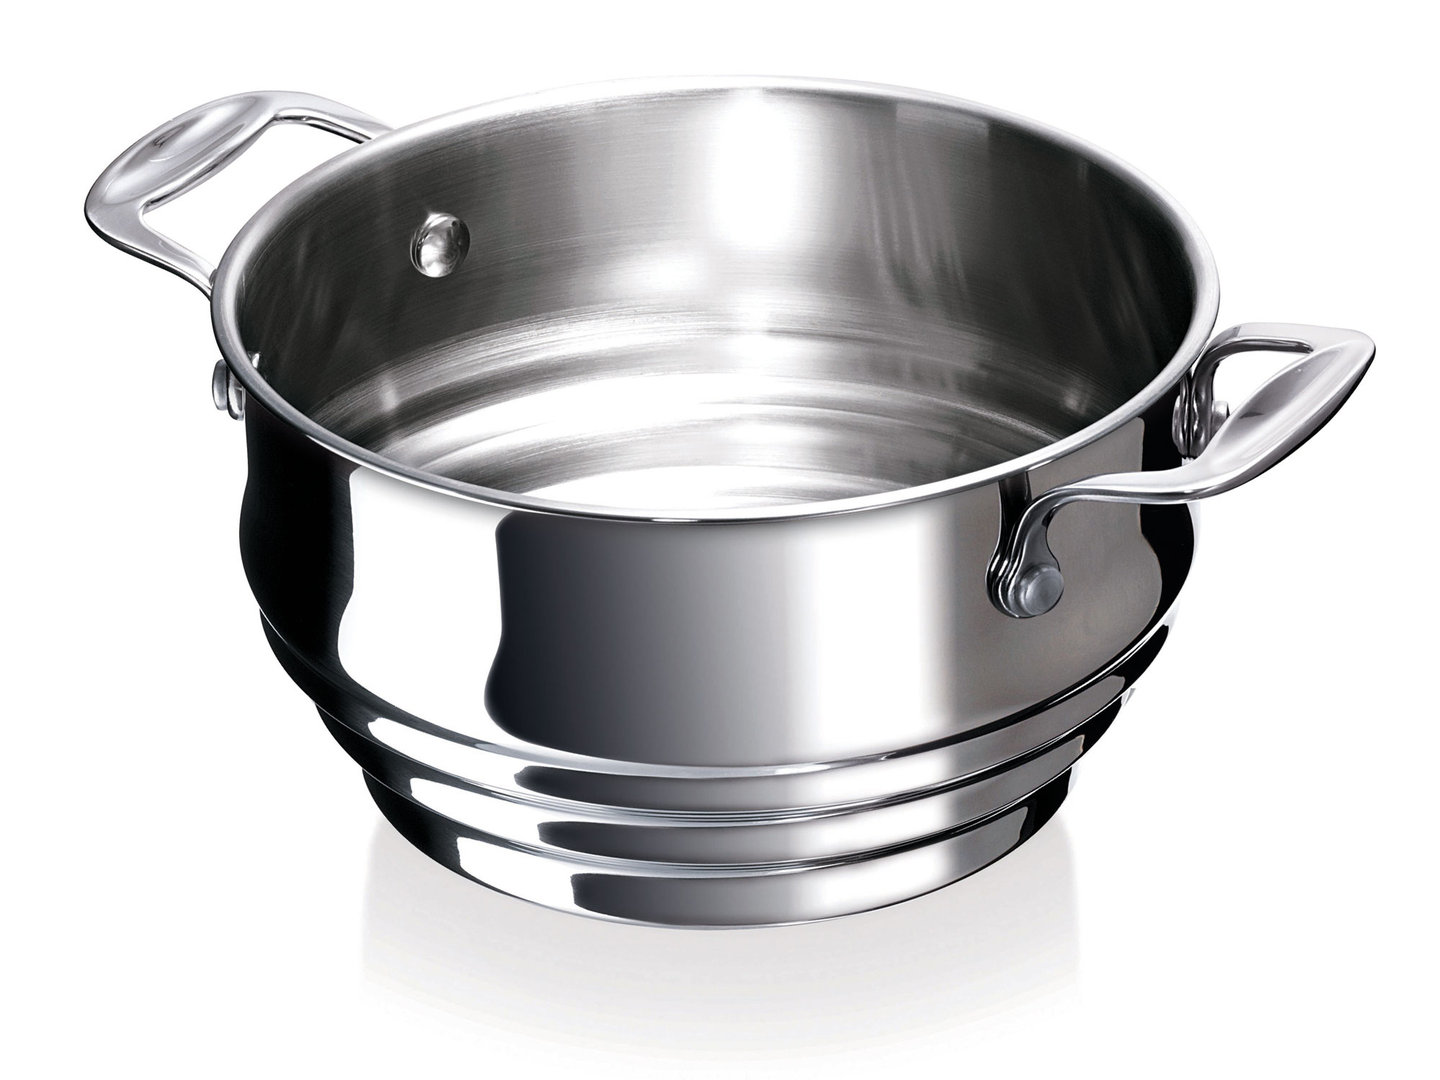 BEKA multi steamer CHEF 16 / 18 / 20 cm stainless steel